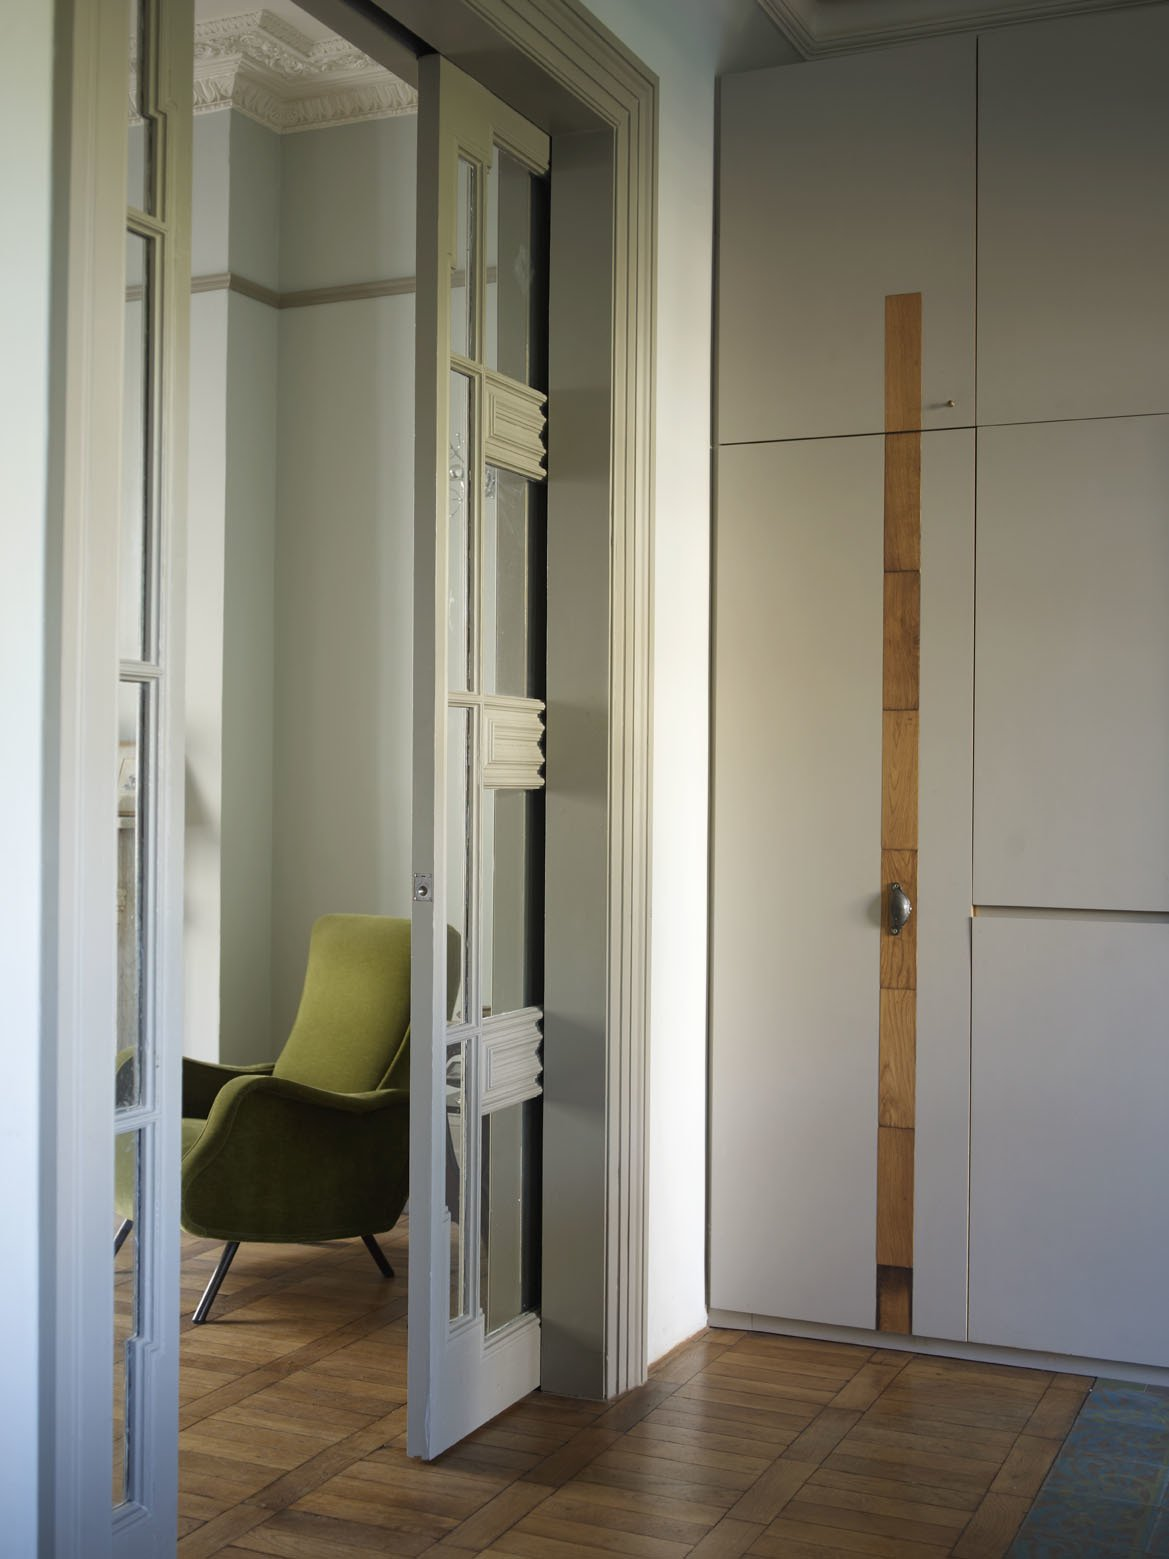 The doorways were widened to improve spatial flow. Sliding pocket doors from a 1950s French hotel were installed, and now feed into the living areas.